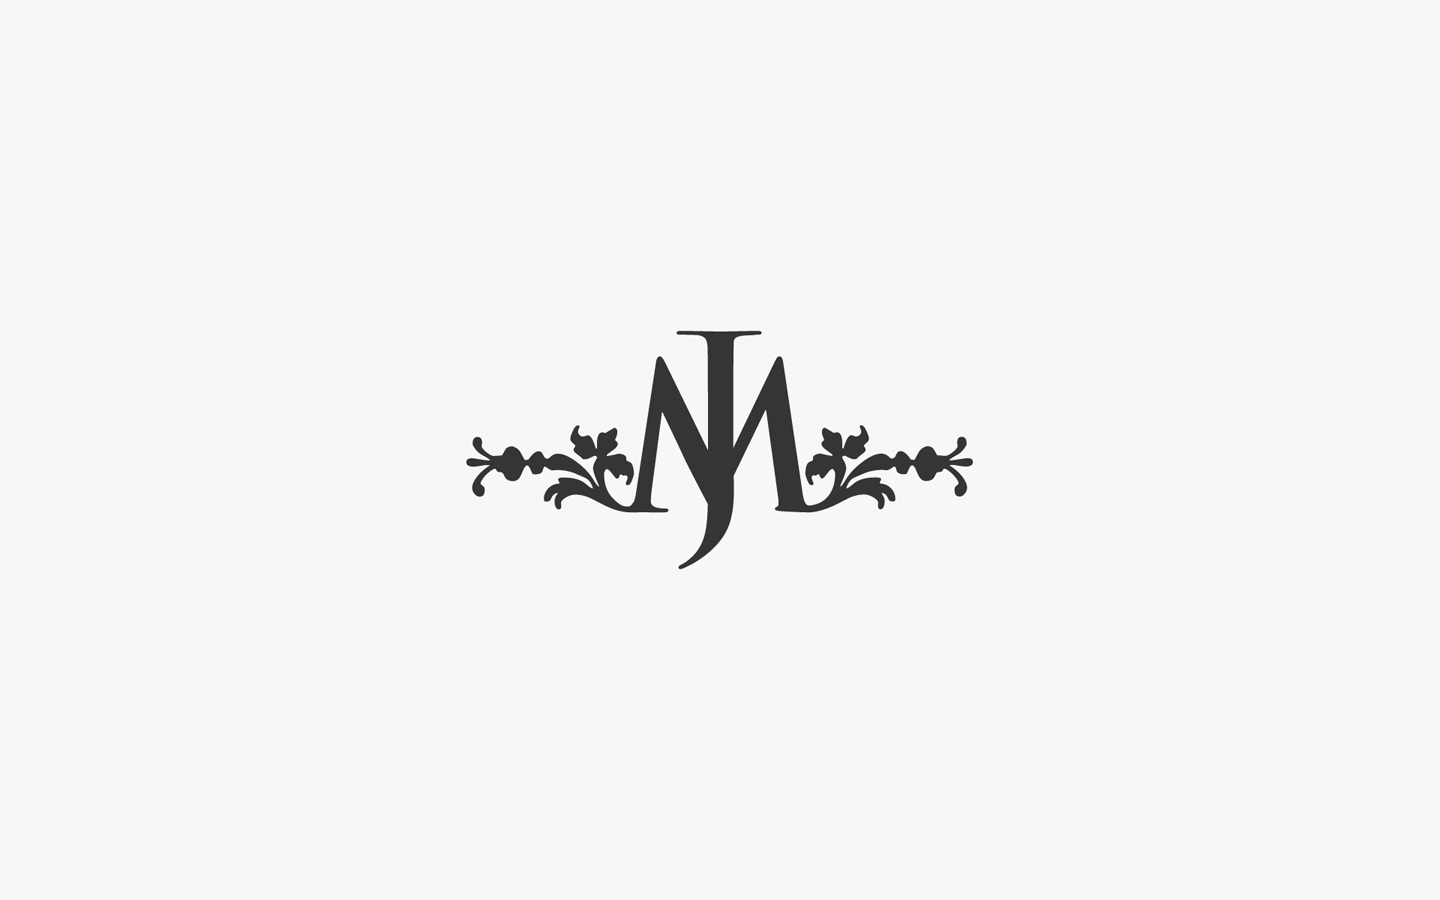 Jane Marie's Logo Design In Mono